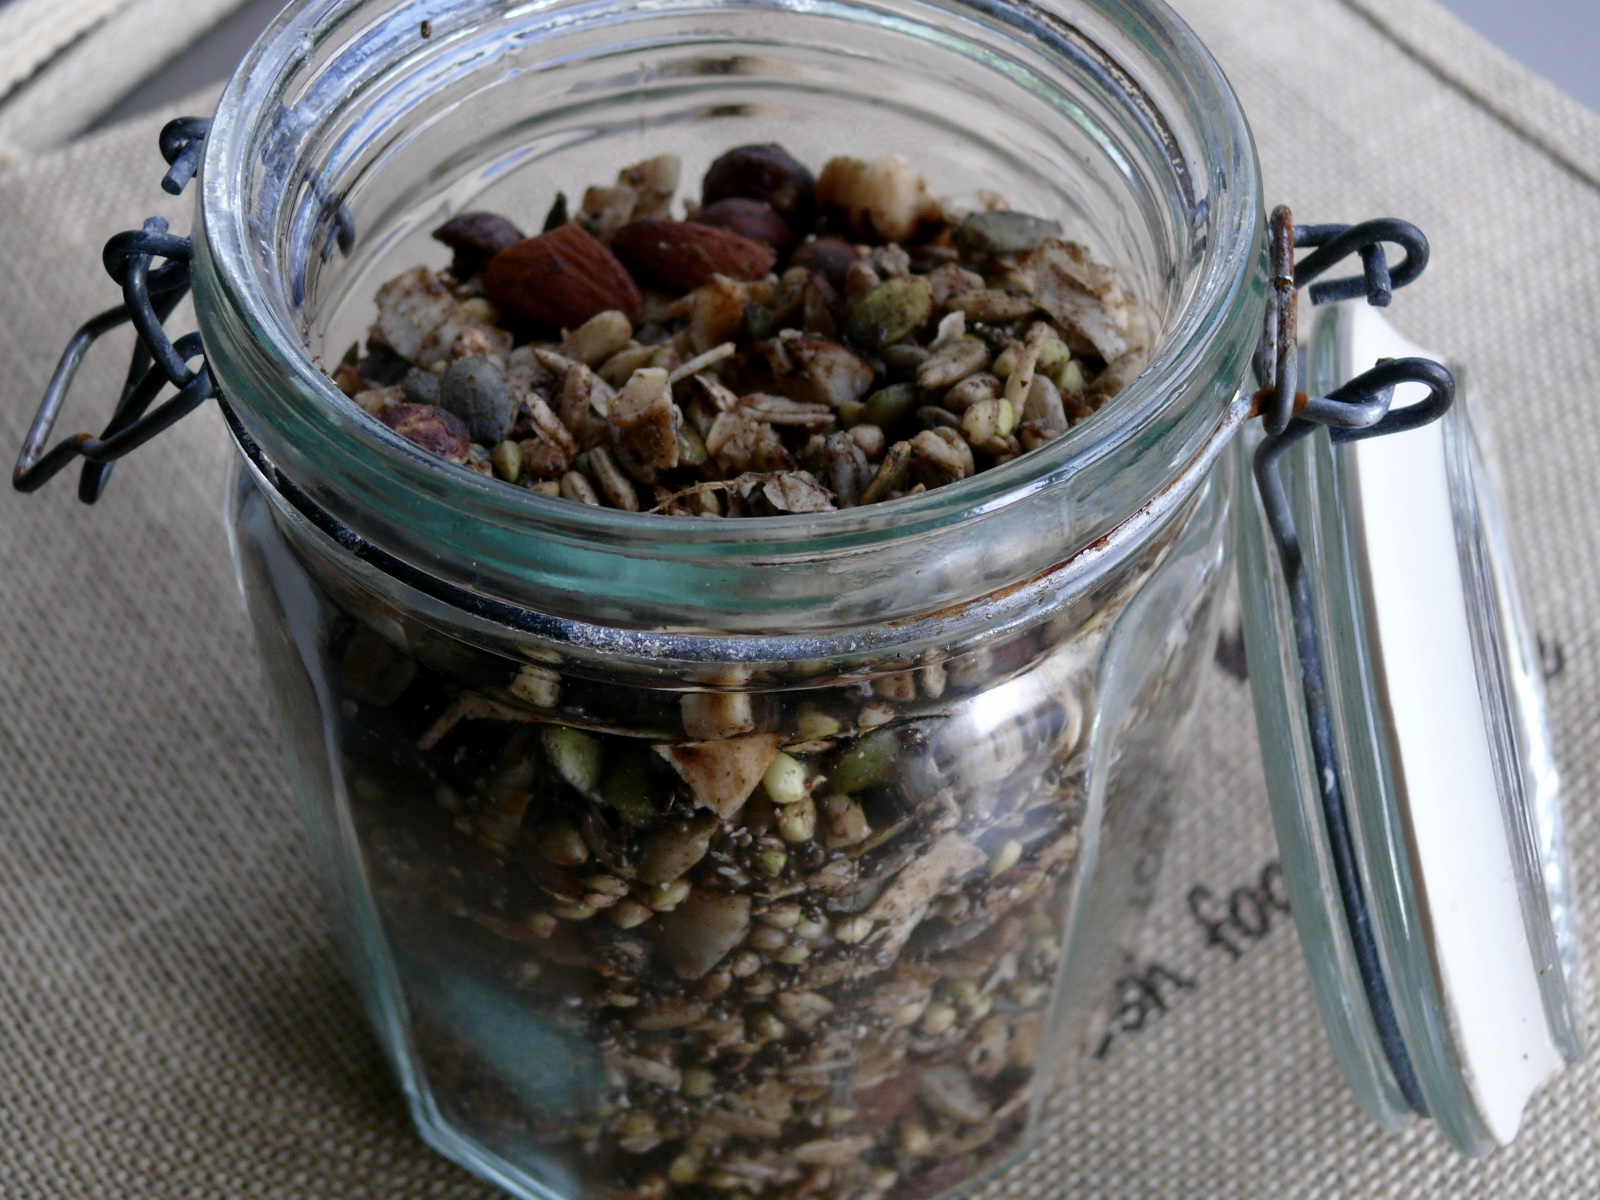 seed and nut mix